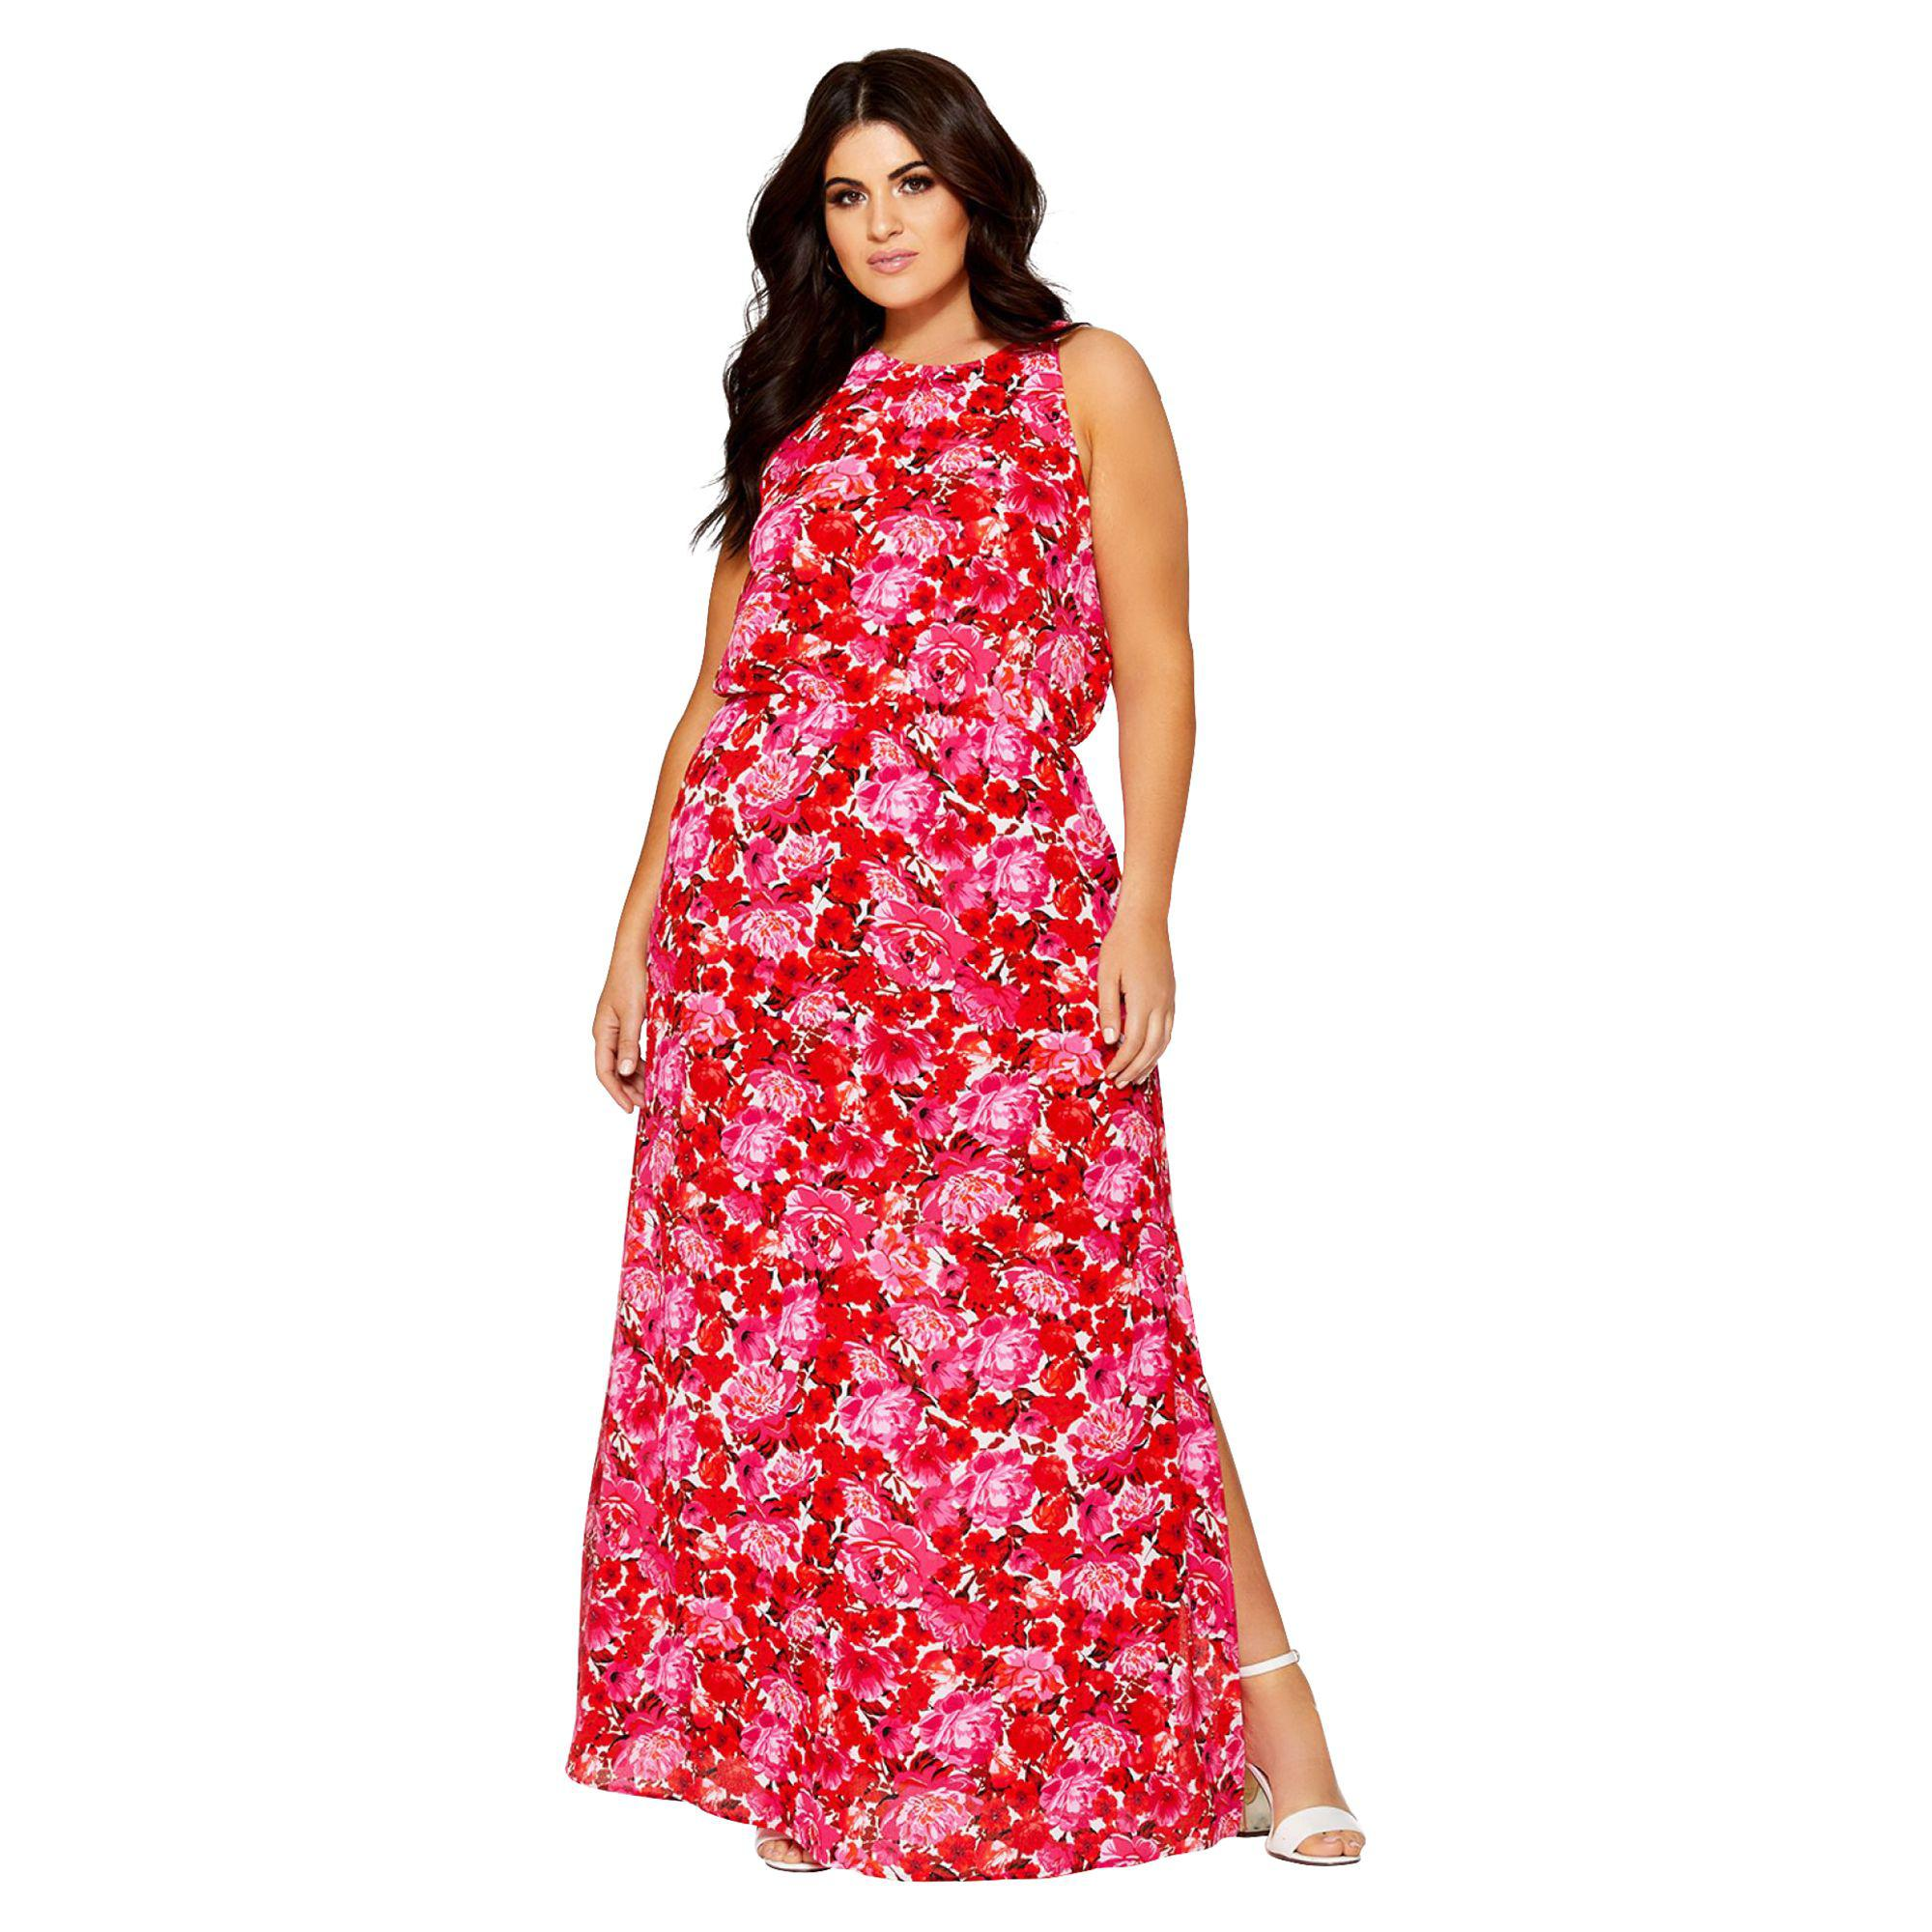 389bbaa92c Quiz Curve Pink And Red Floral High Neck Chiffon Maxi Dress in Pink ...